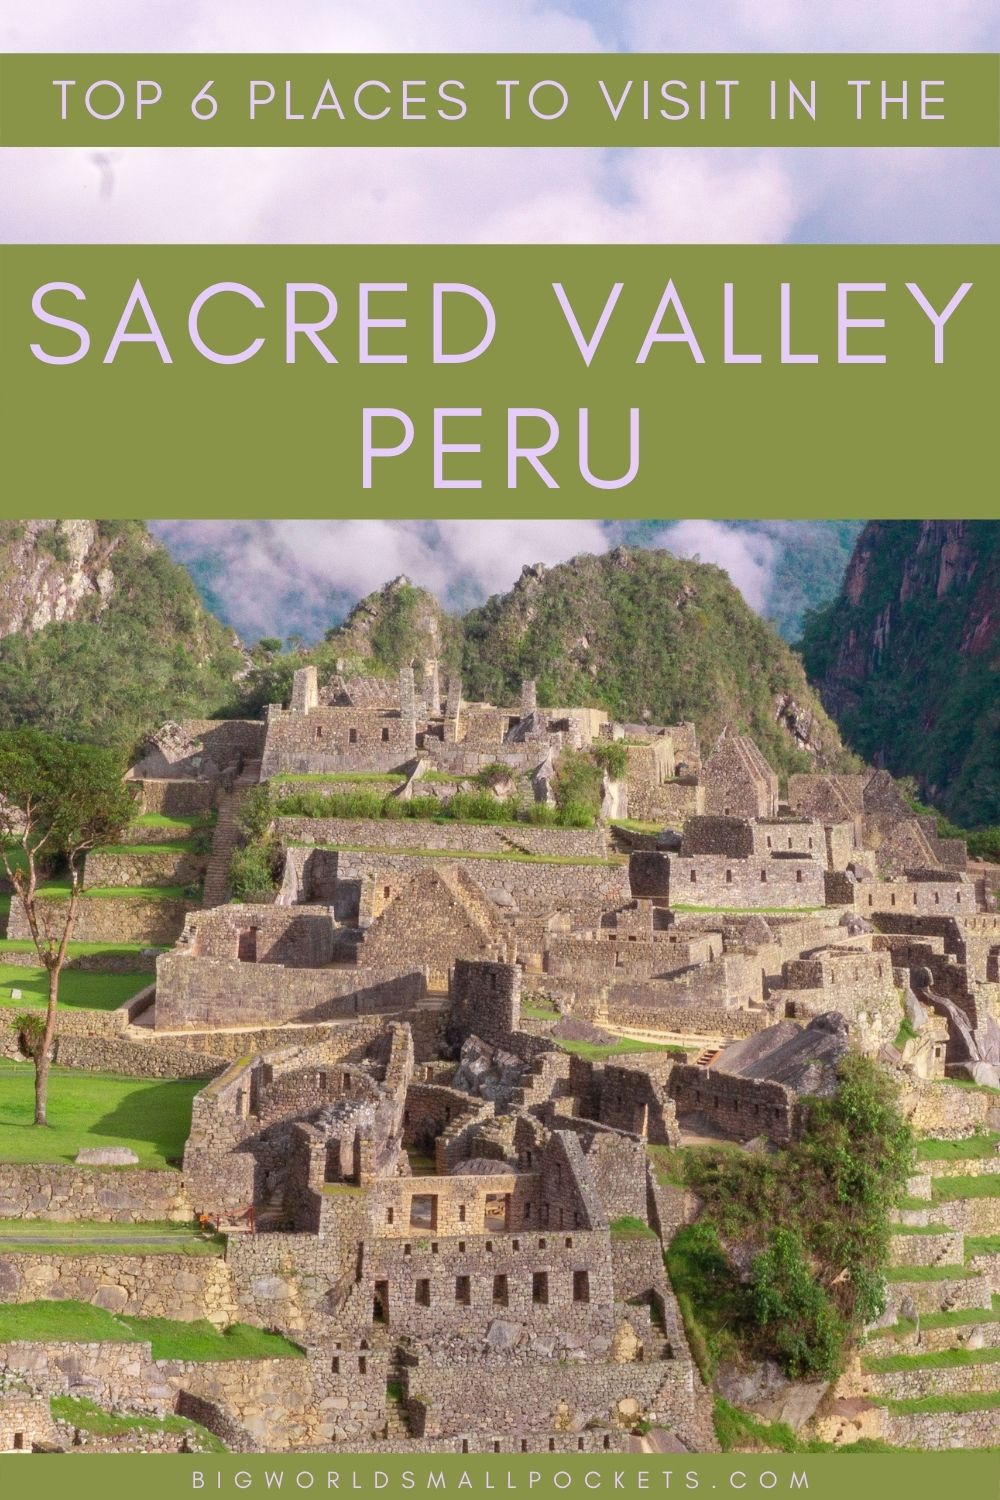 Best 6 Places to Visit in the Sacred Valley, Peru